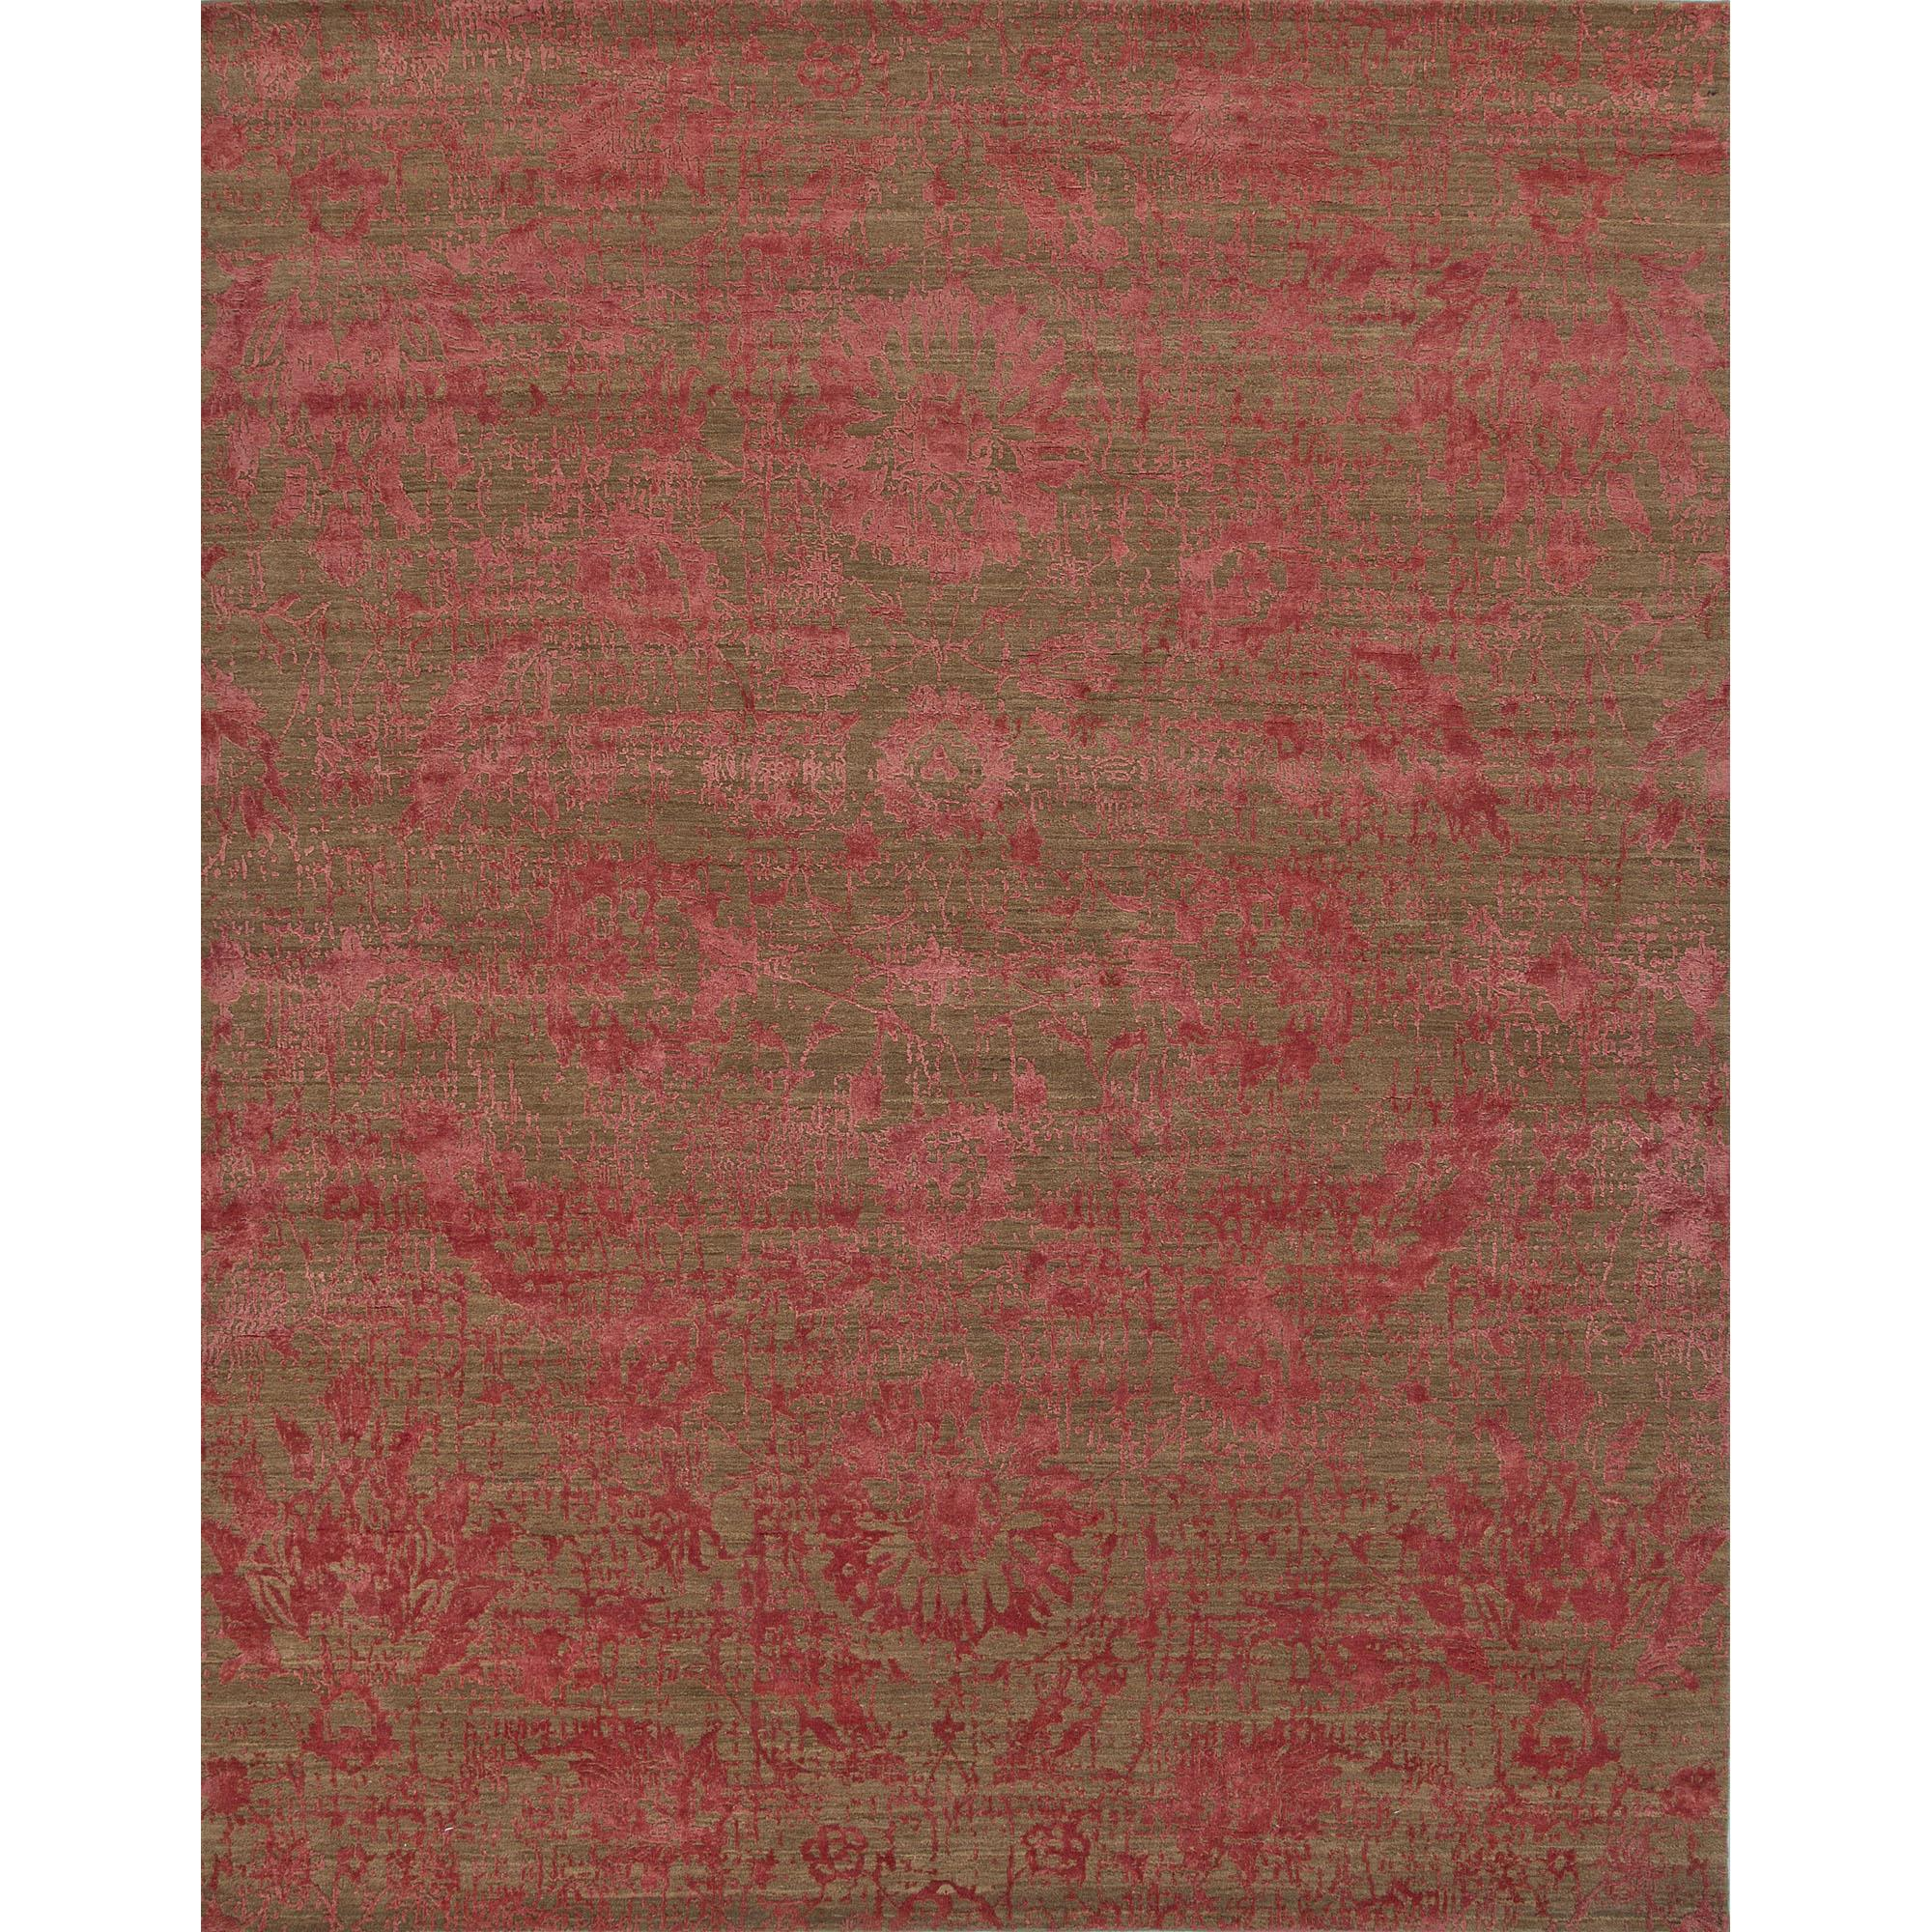 JAIPUR Rugs Chaos Theory By Kavi 8 x 10 Rug - Item Number: RUG118005